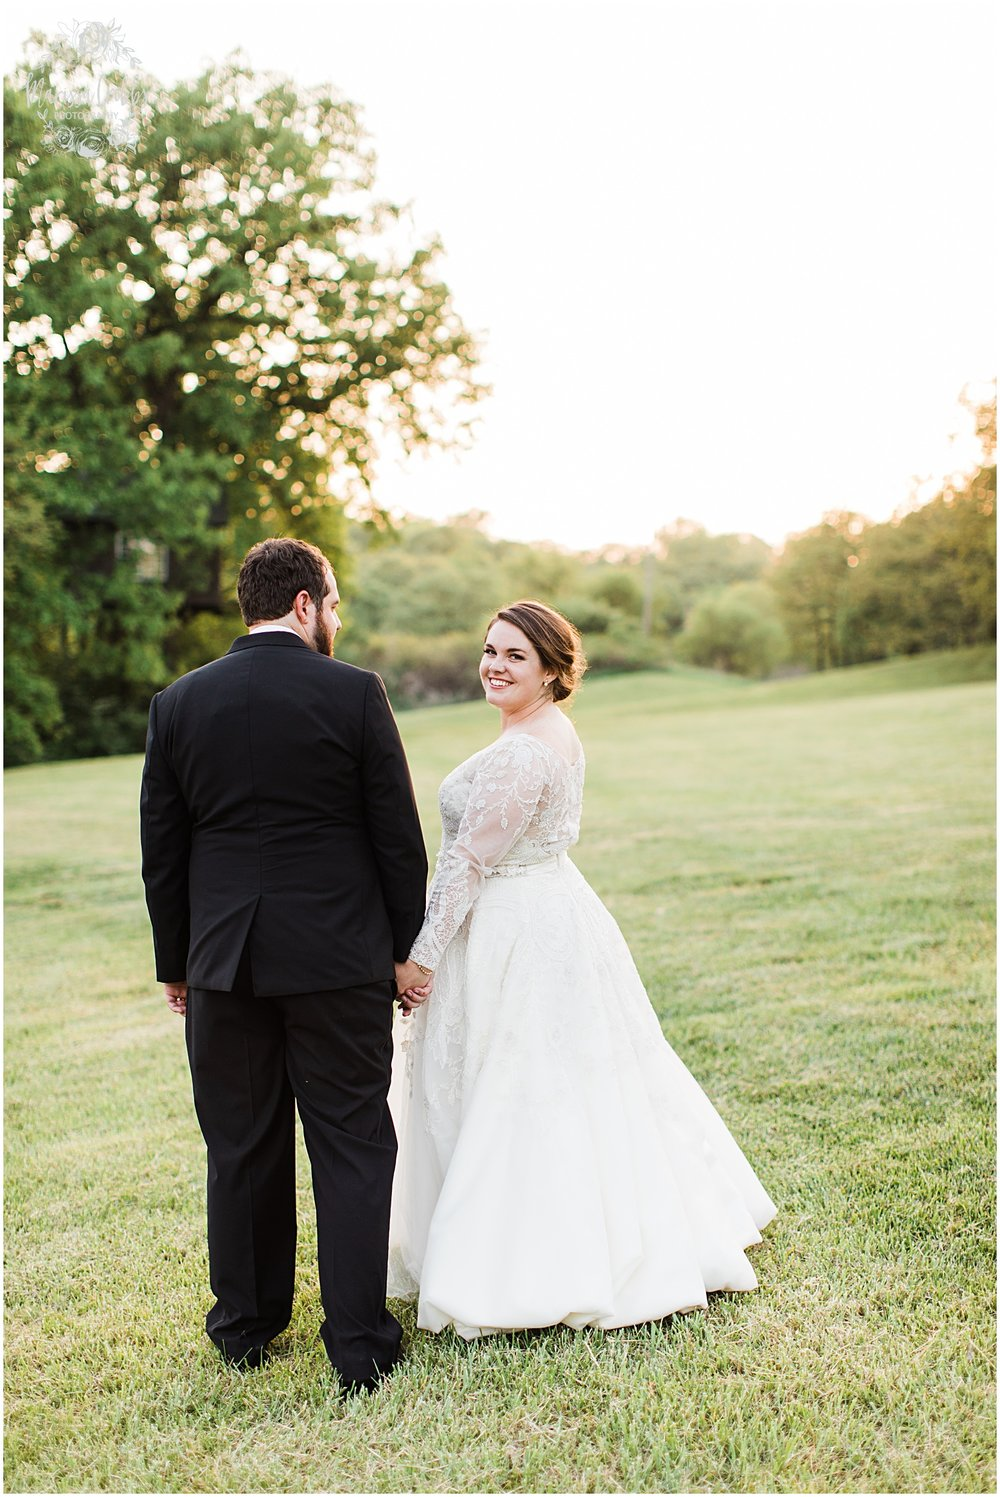 GORBY WEDDING | MARISSA CRIBBS PHOTOGRAPHY_5129.jpg